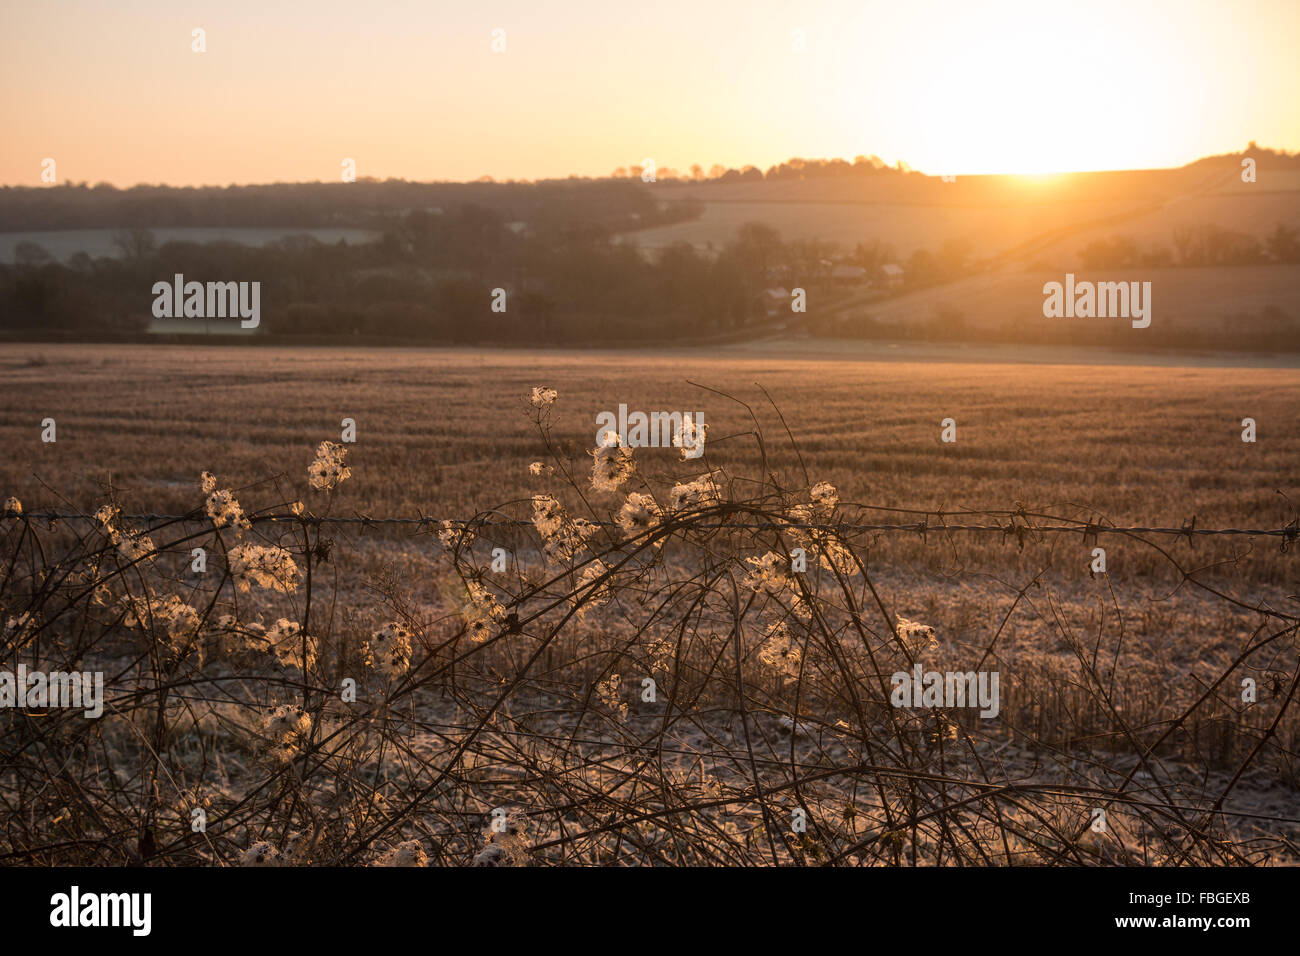 Hill Farm, Morestead, Hampshire, UK, 16th January 2016. UK Weather. The rising sun shines through the furry seed - Stock Image